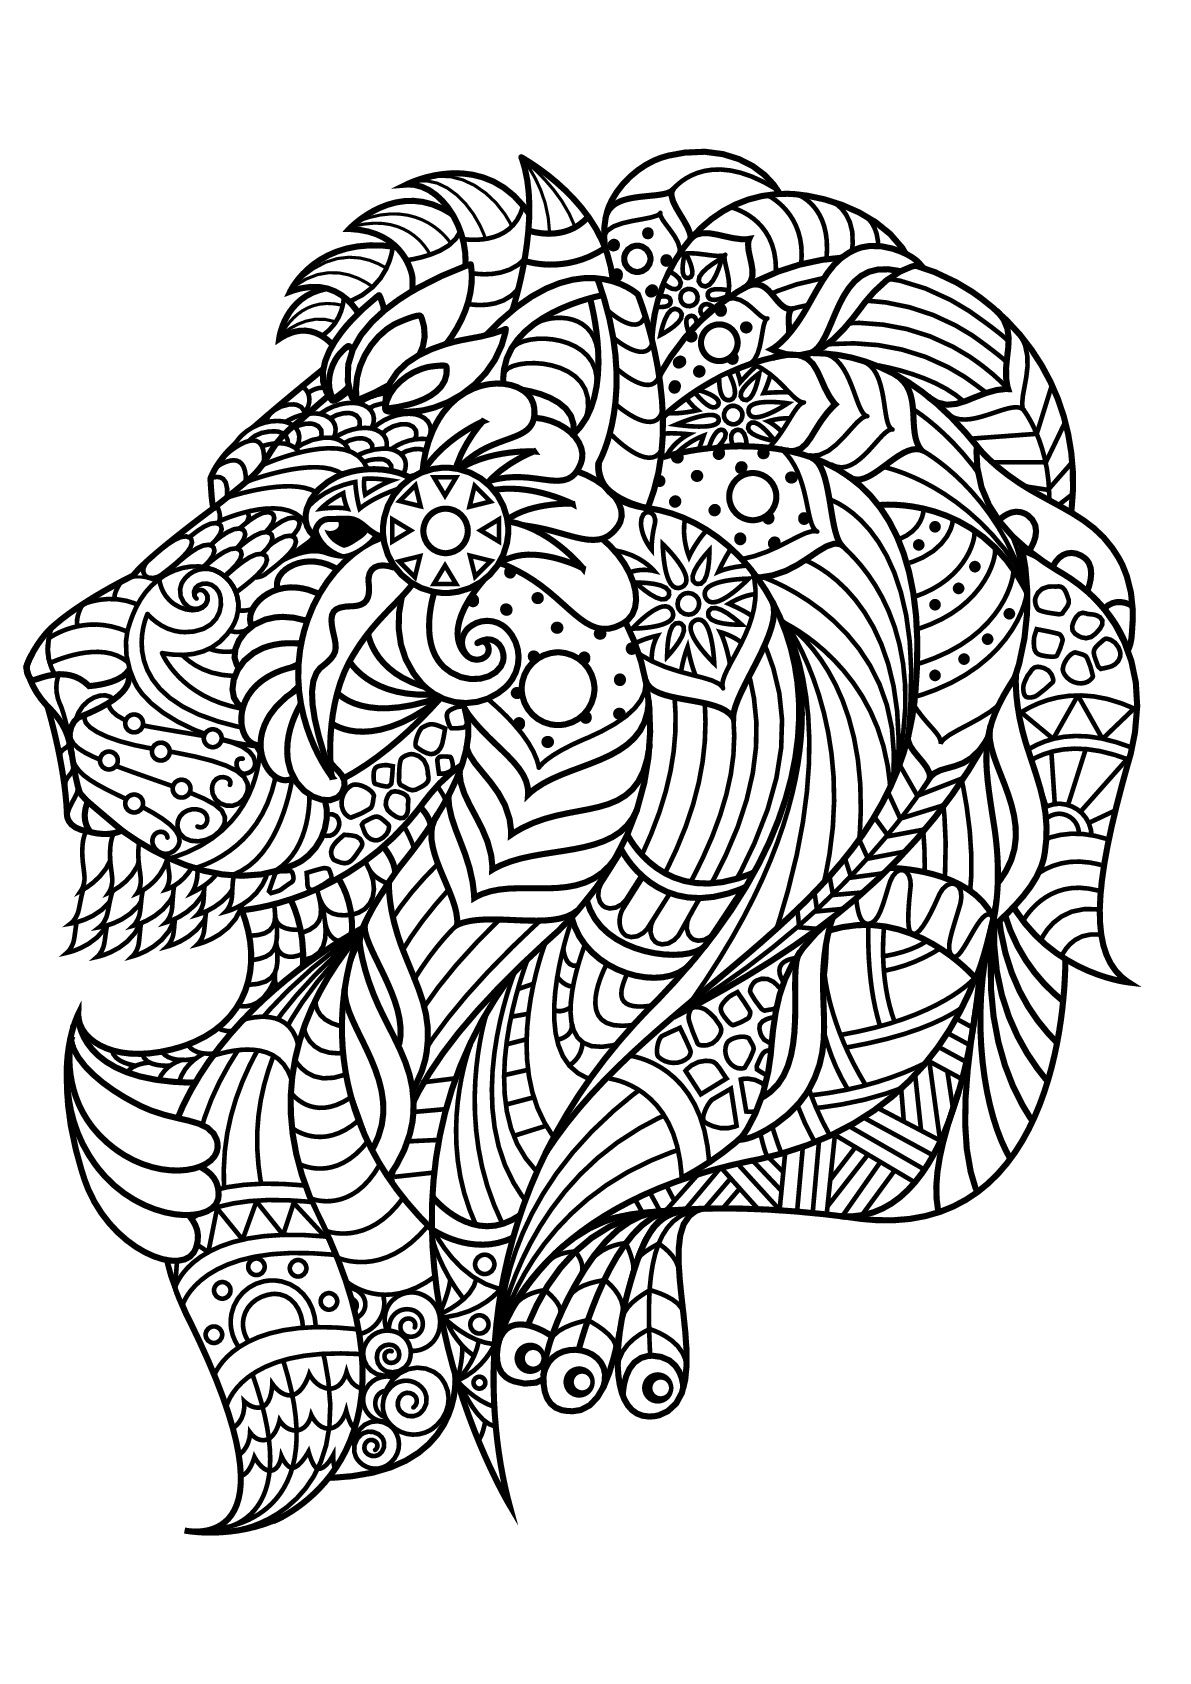 Tete De Lion Et Jolis Motifs A Partir De La Galerie Animaux Lion Coloring Pages Animal Coloring Books Horse Coloring Pages